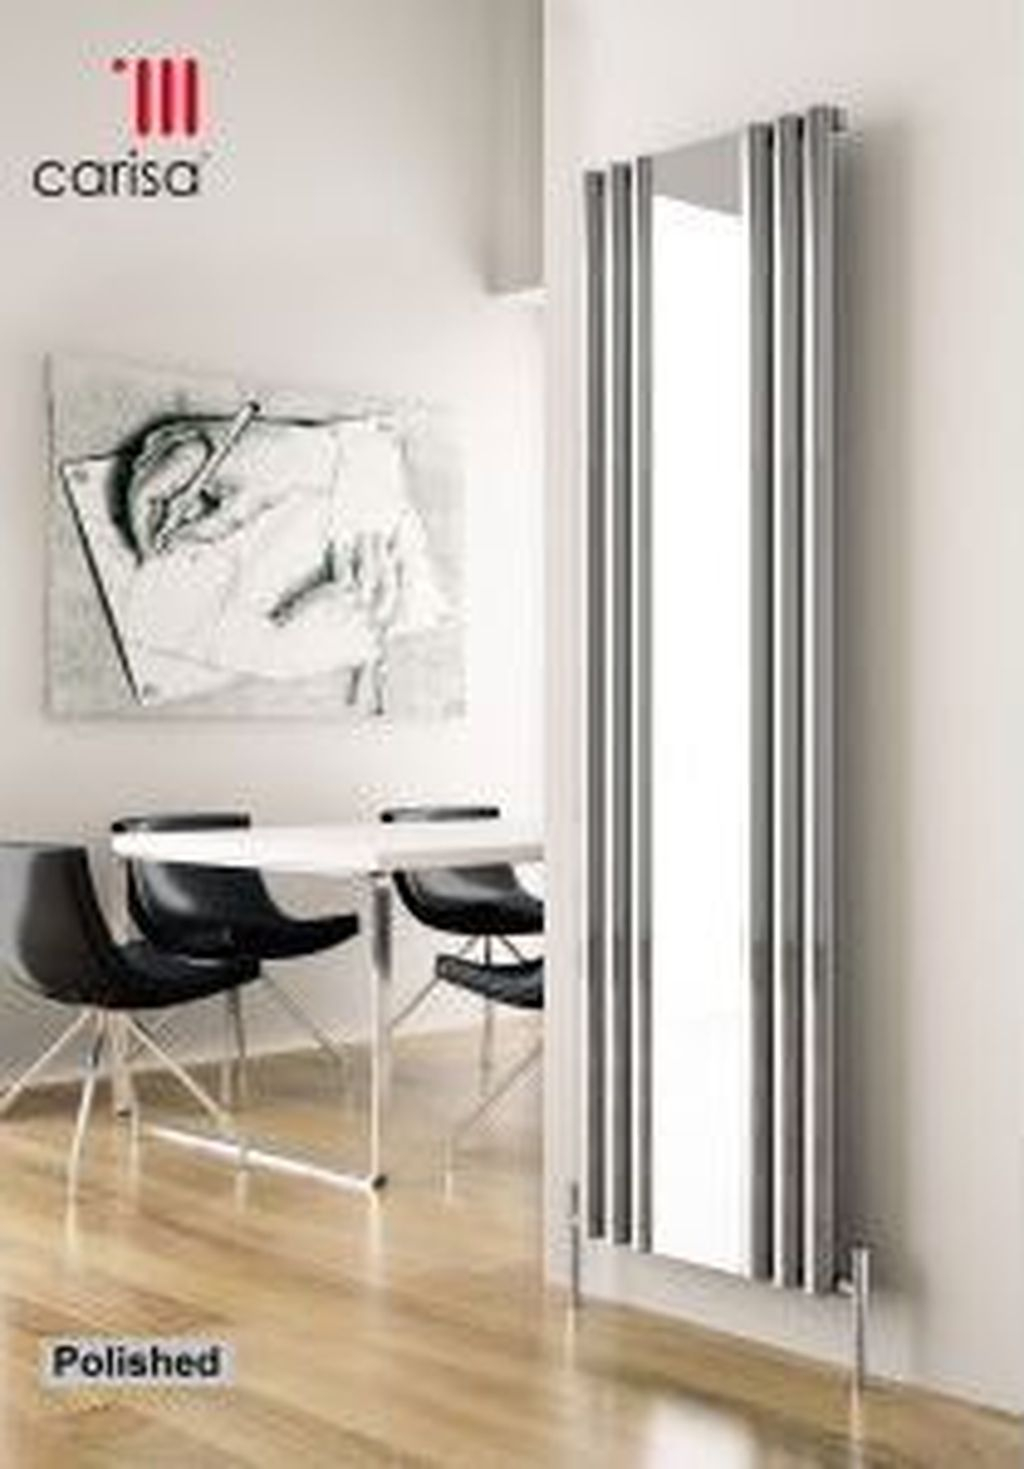 Inexpensive Radiators Design Ideas That Will Spruce Up Your Space 01